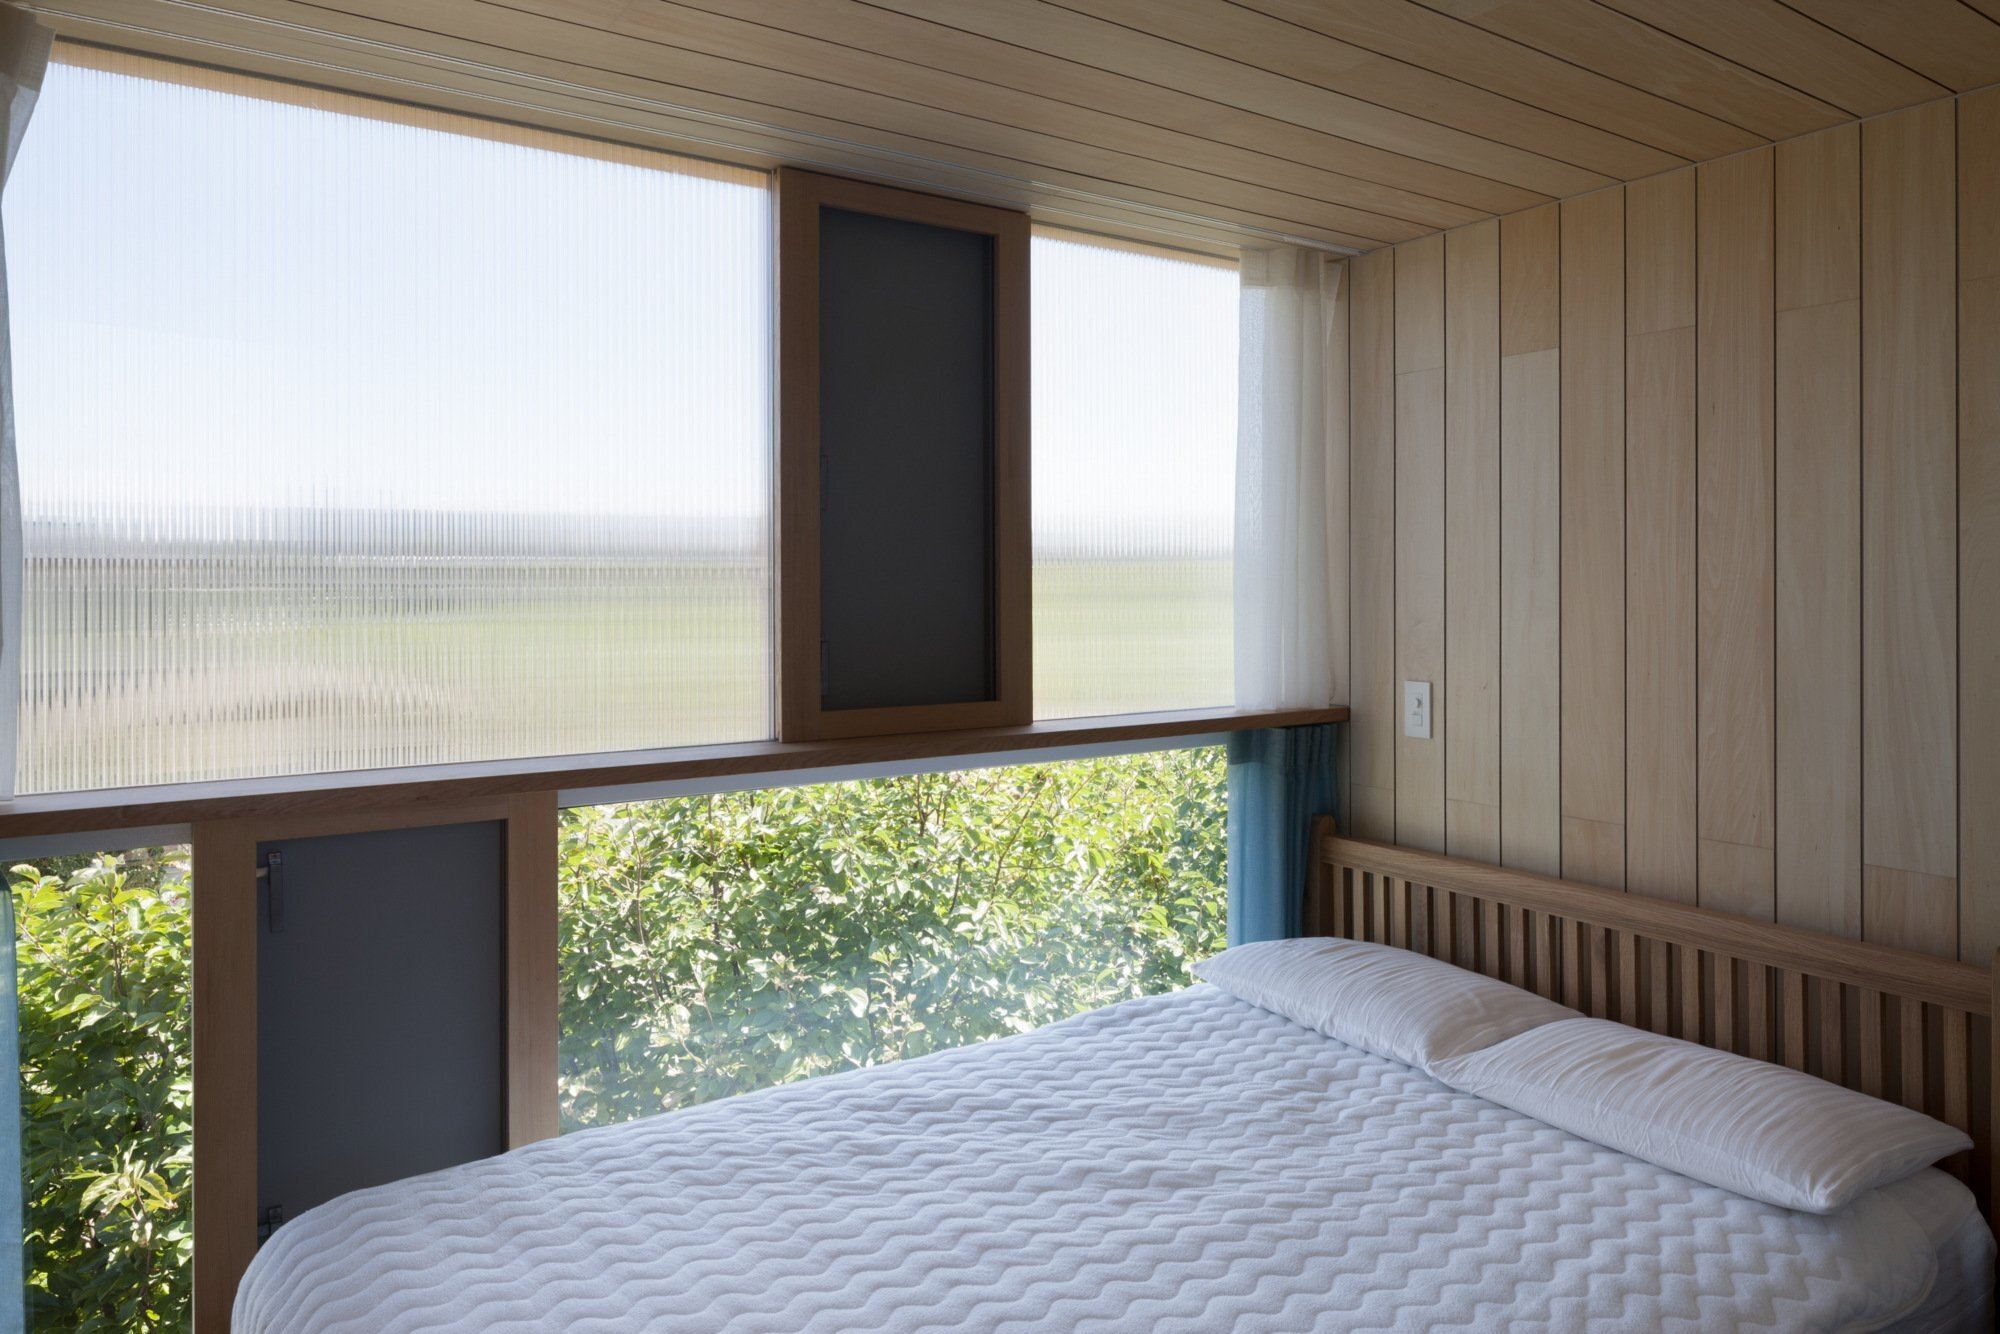 House Passage of Landscape - Japanese House - ihrmk - Toyota Japan - Bedroom - Humble Homes